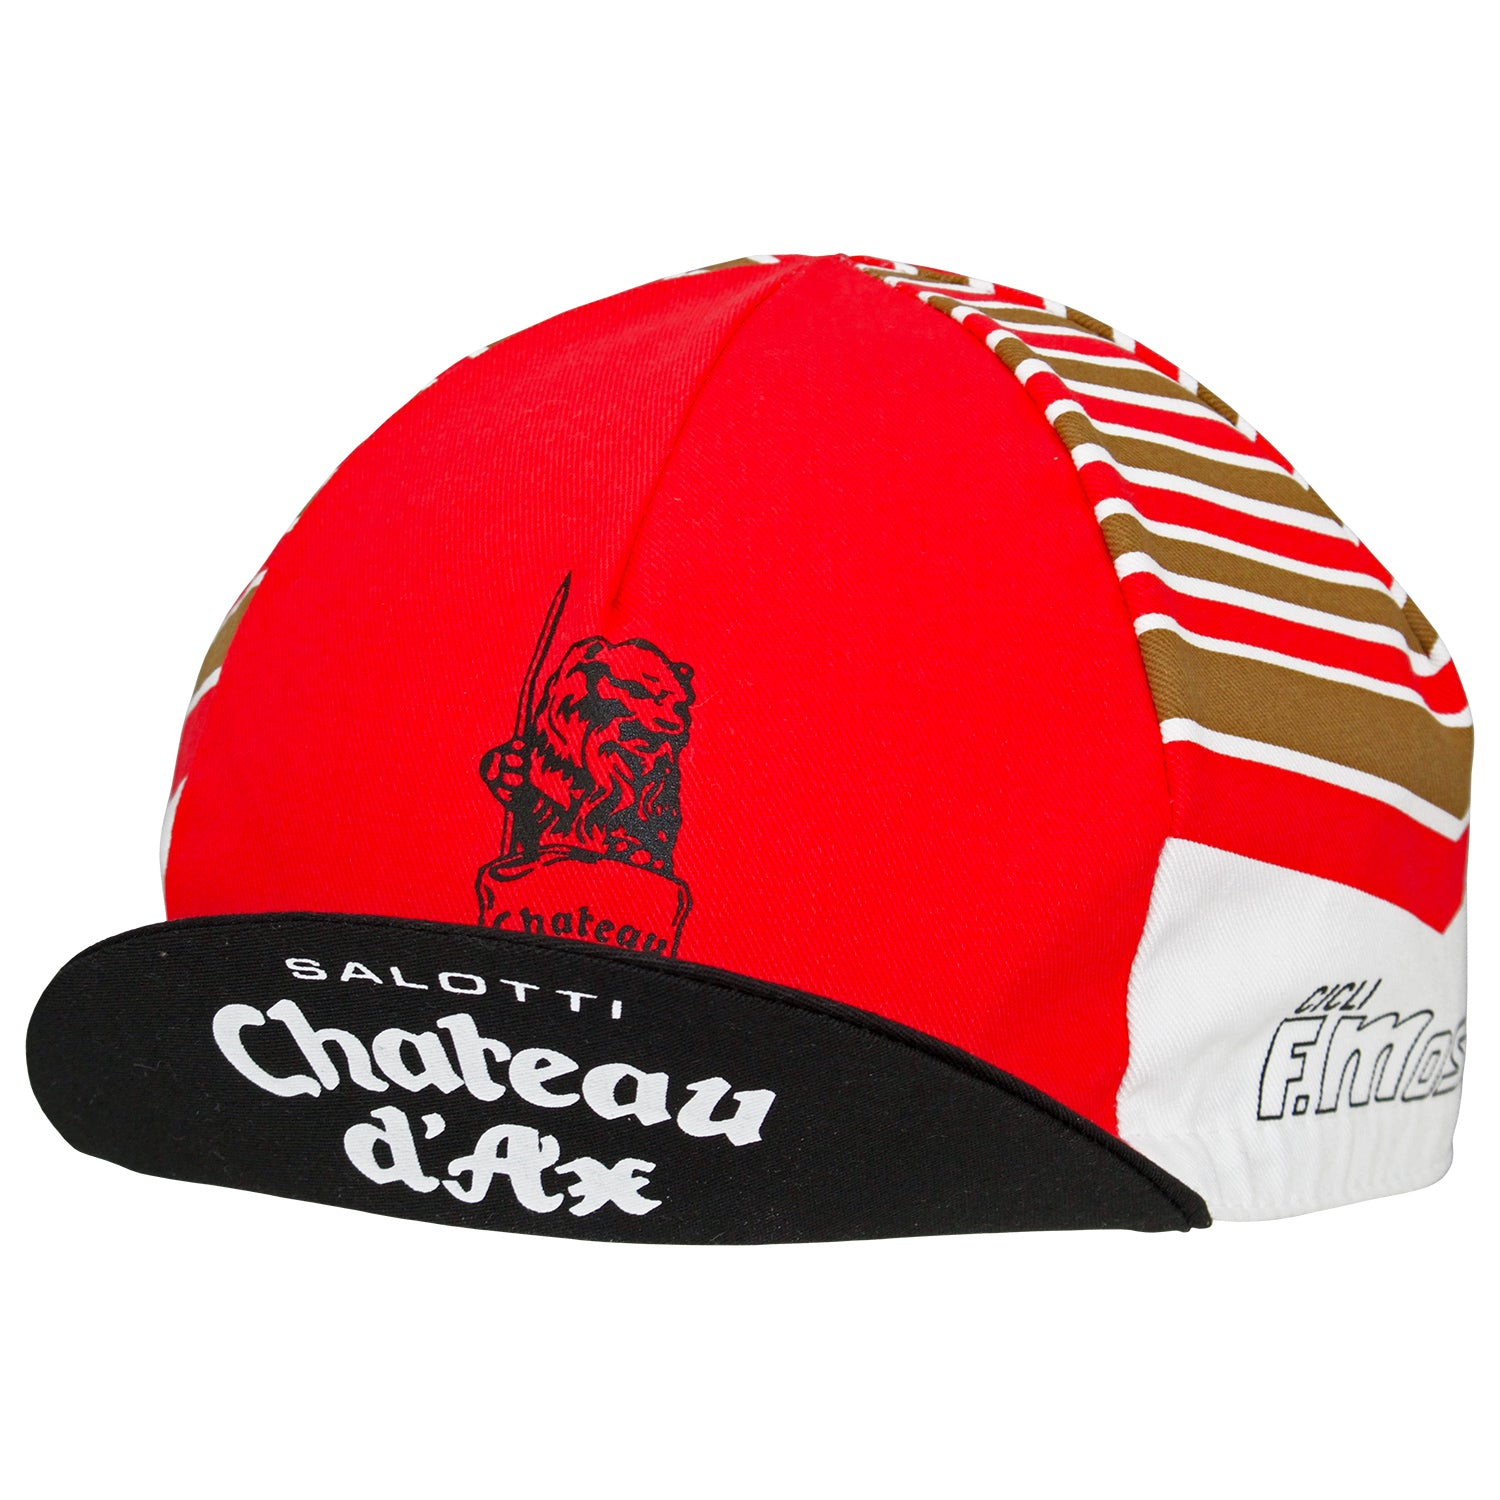 Salotti Chateau Dax.Chateaux D Ax Salotti F Moser Retro Cotton Cycling Cap